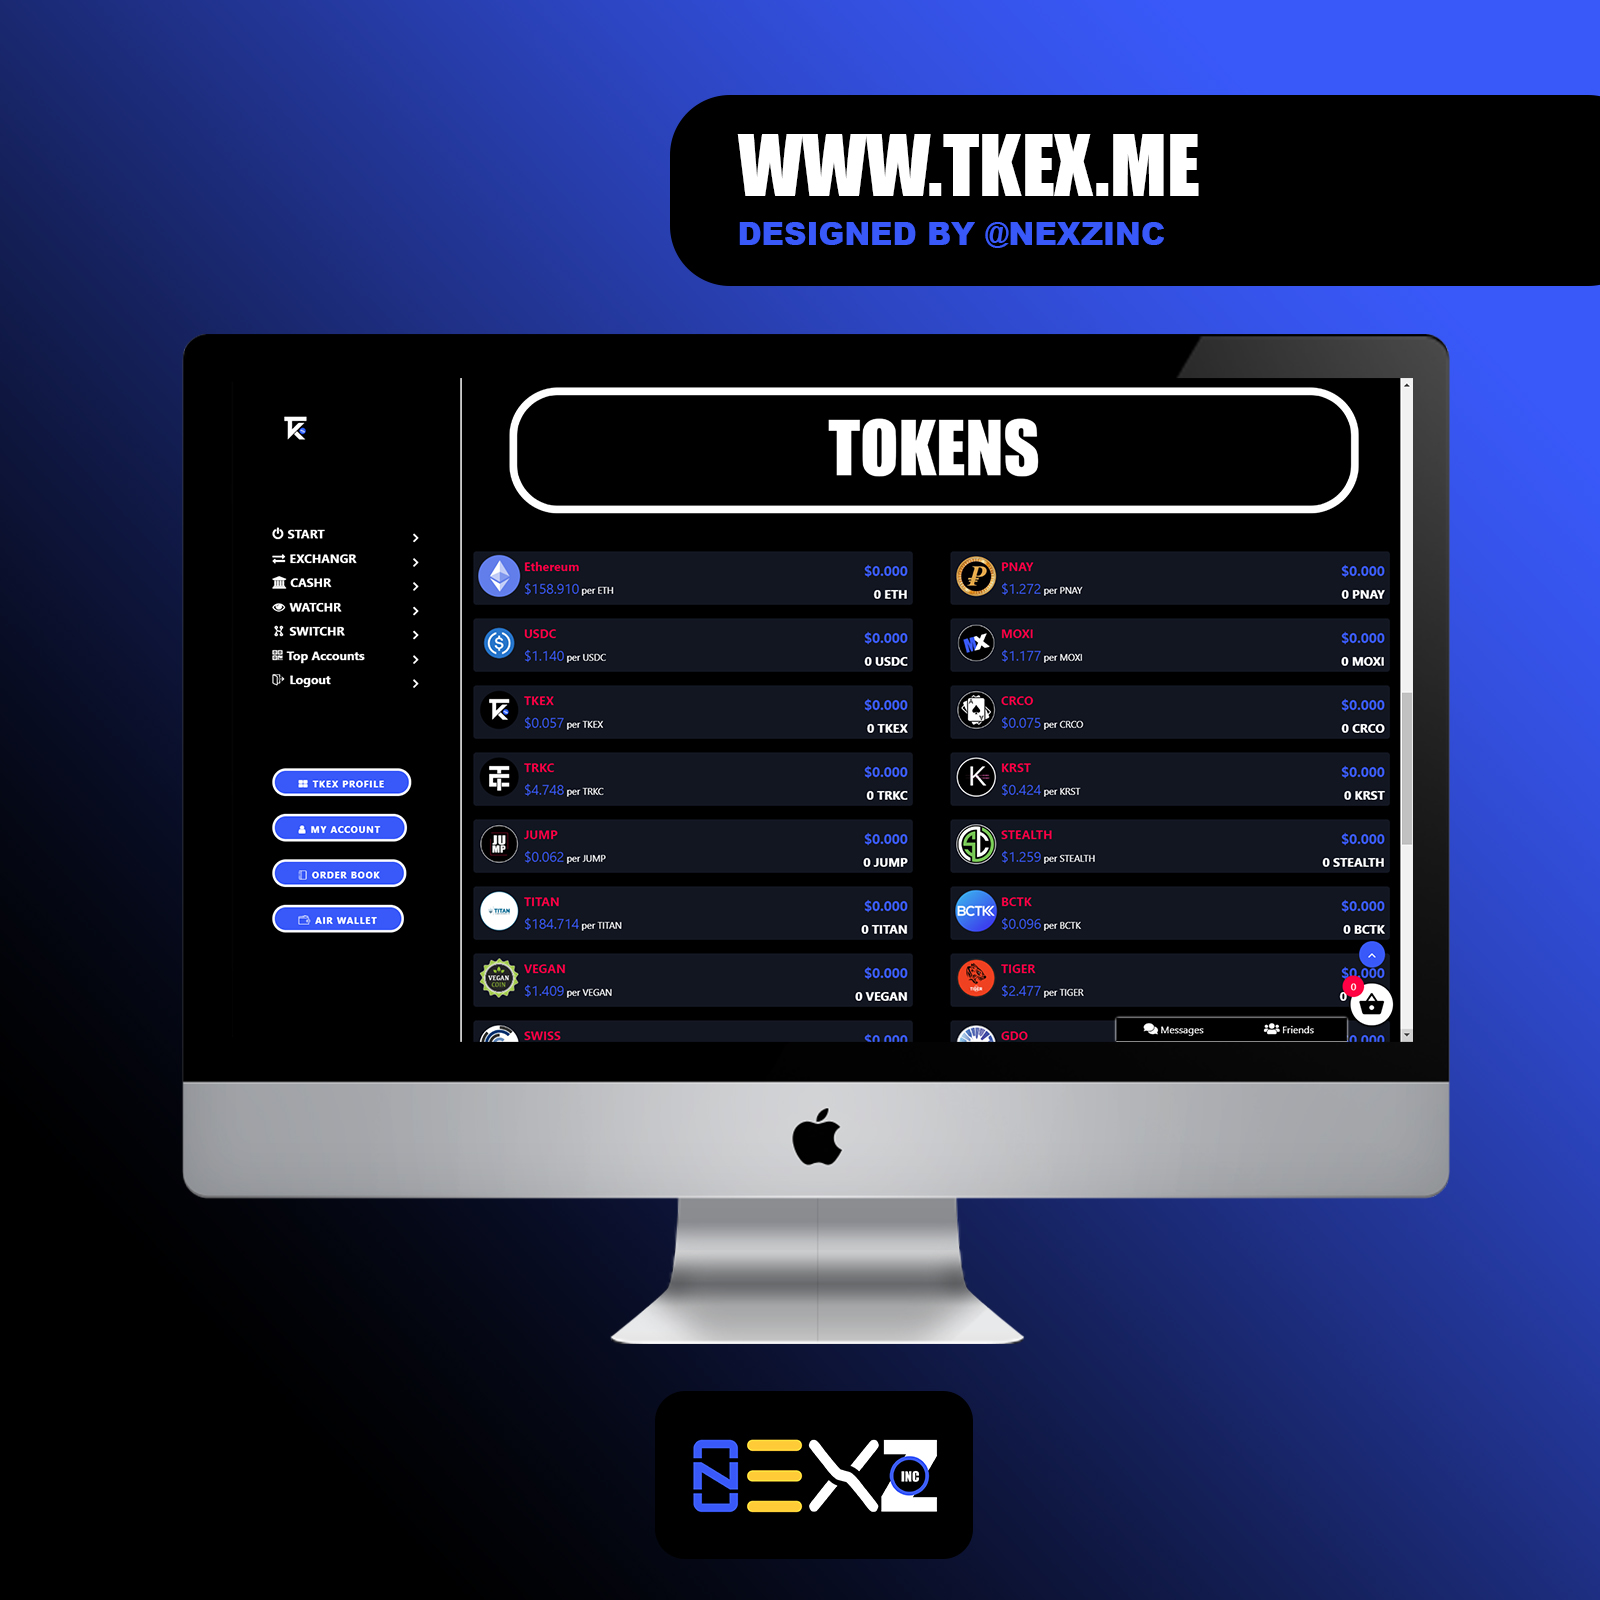 TKEX Token Page